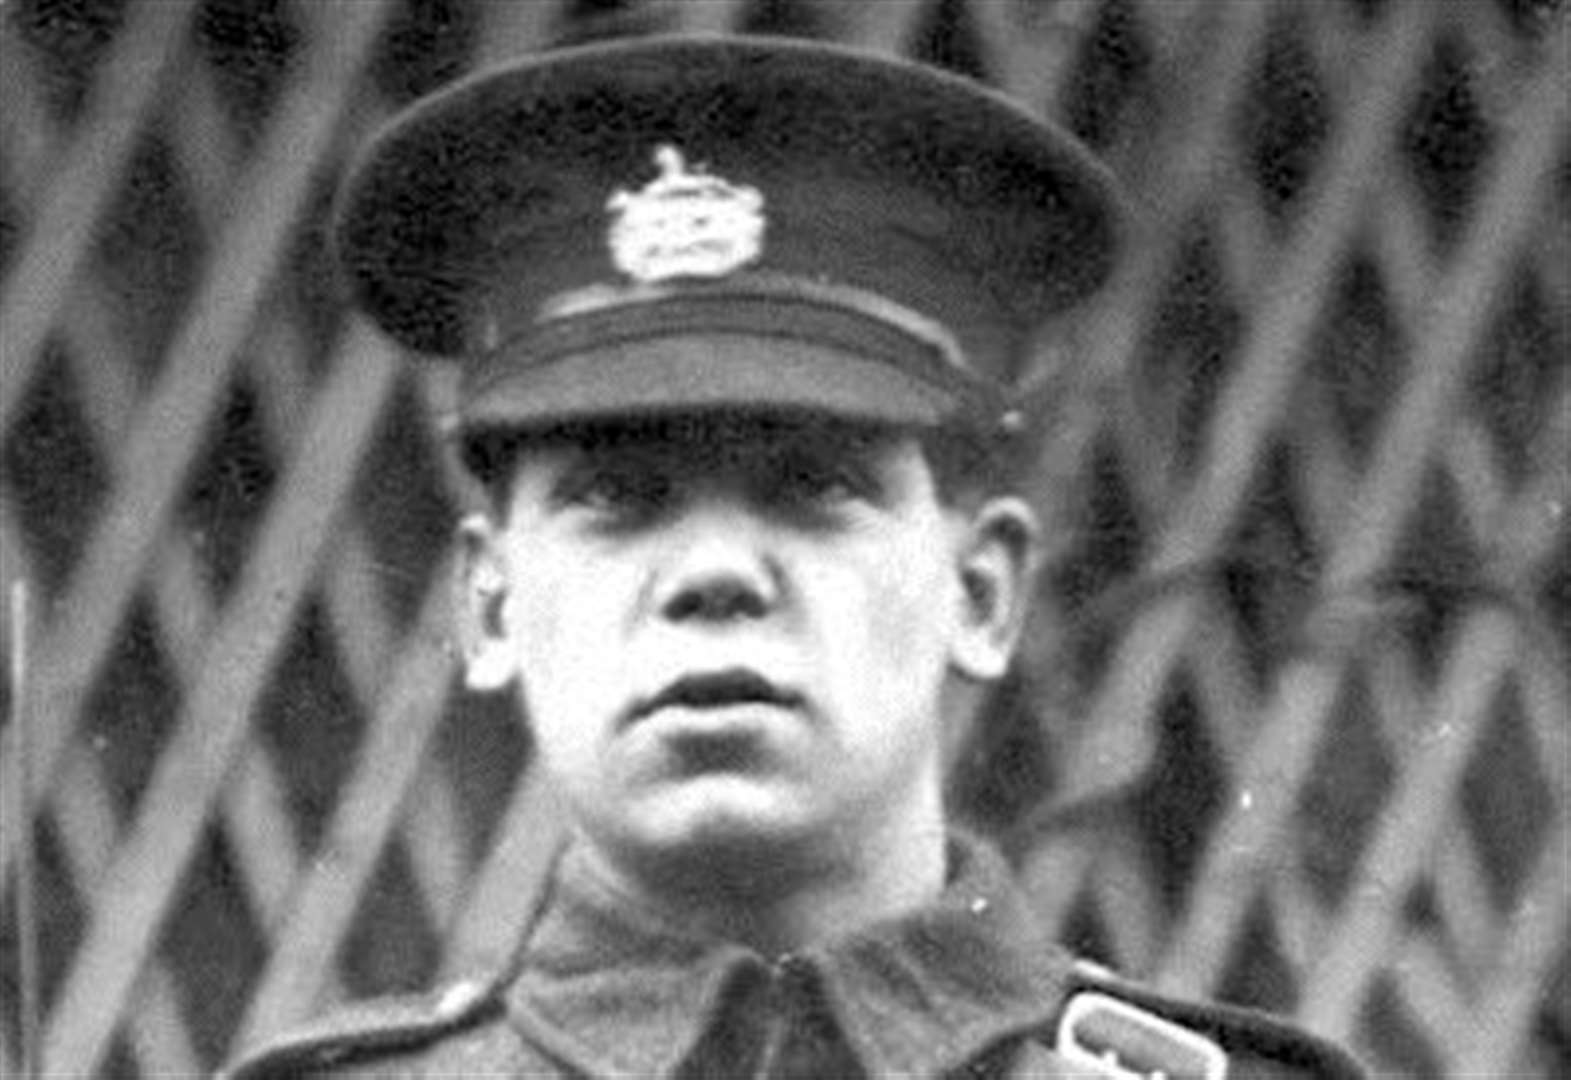 WWI soldier from Haverhill commemorated in his adopted home town